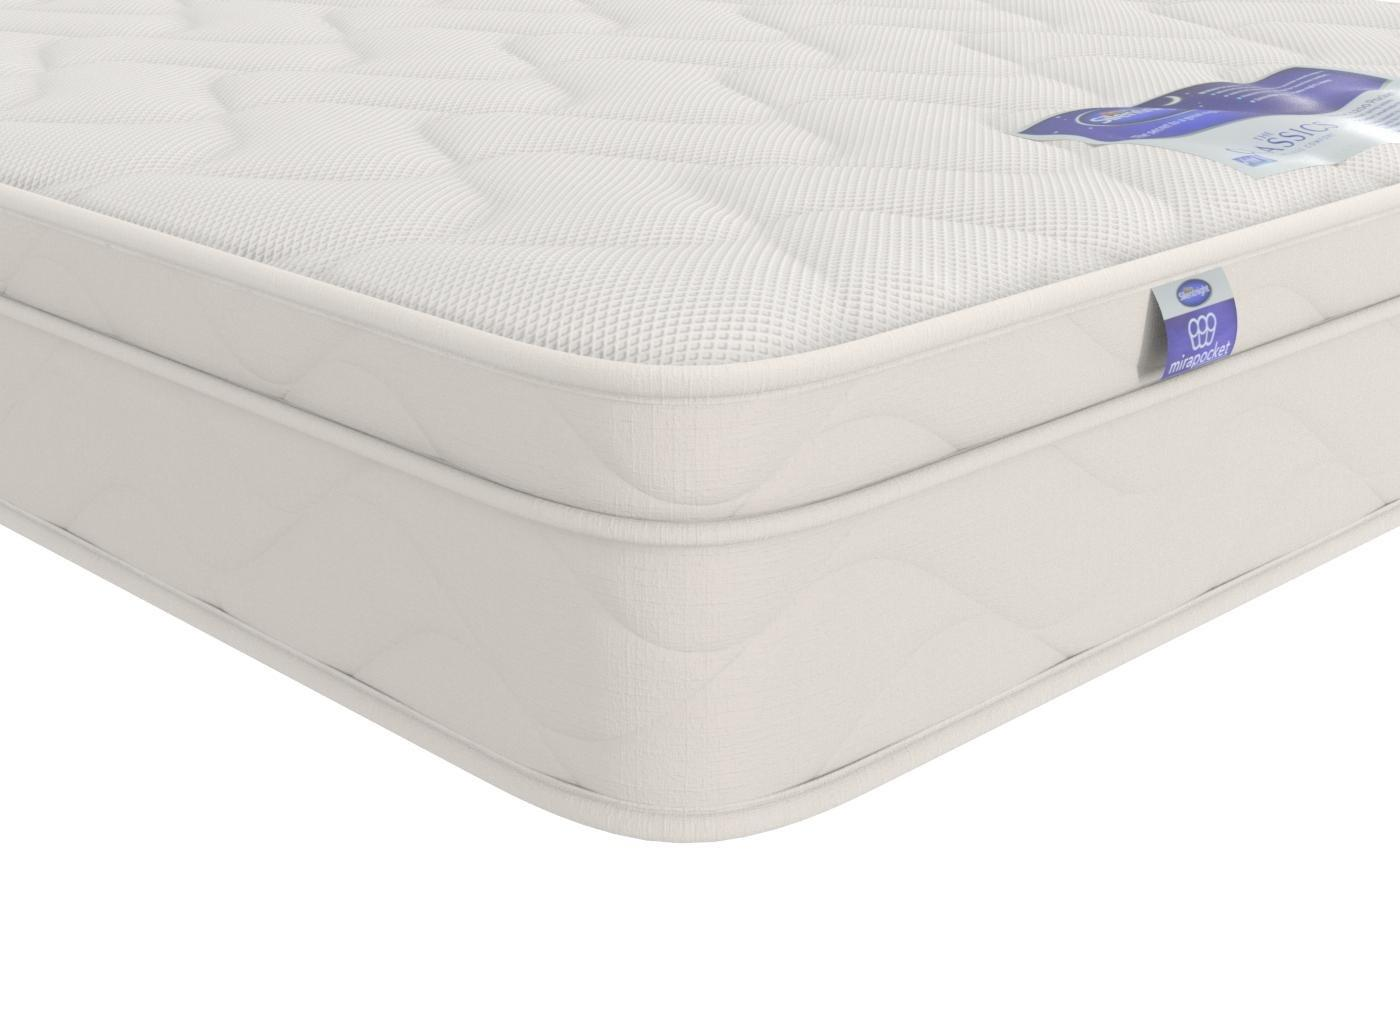 Silentnight Westland Miracoil Mattress - Medium Firm 6'0 Super king